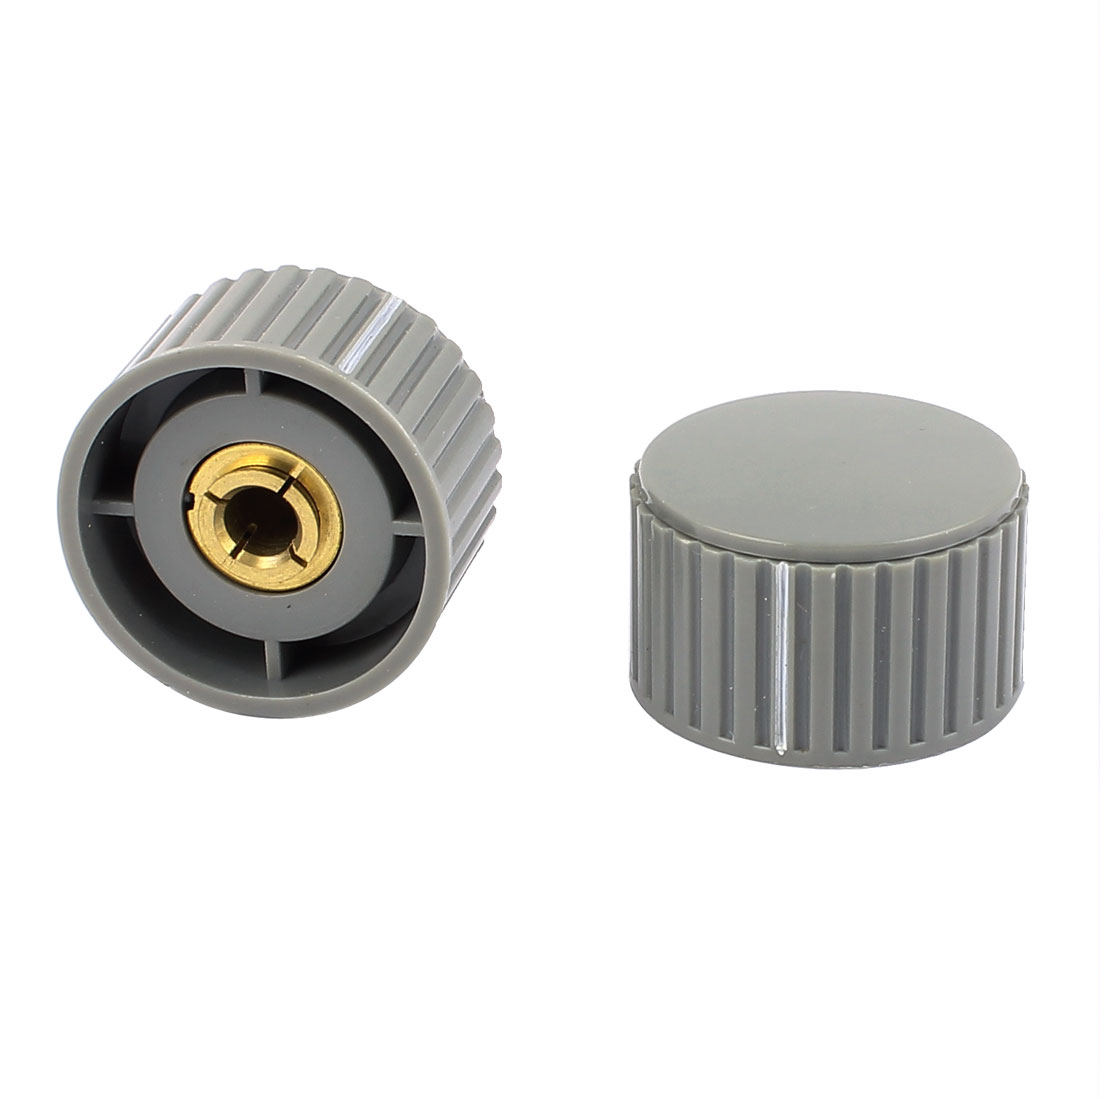 2 Pcs 32 x 19mm Gray Bakelite Knob Cap Control Rotary Switch for Potentiometer